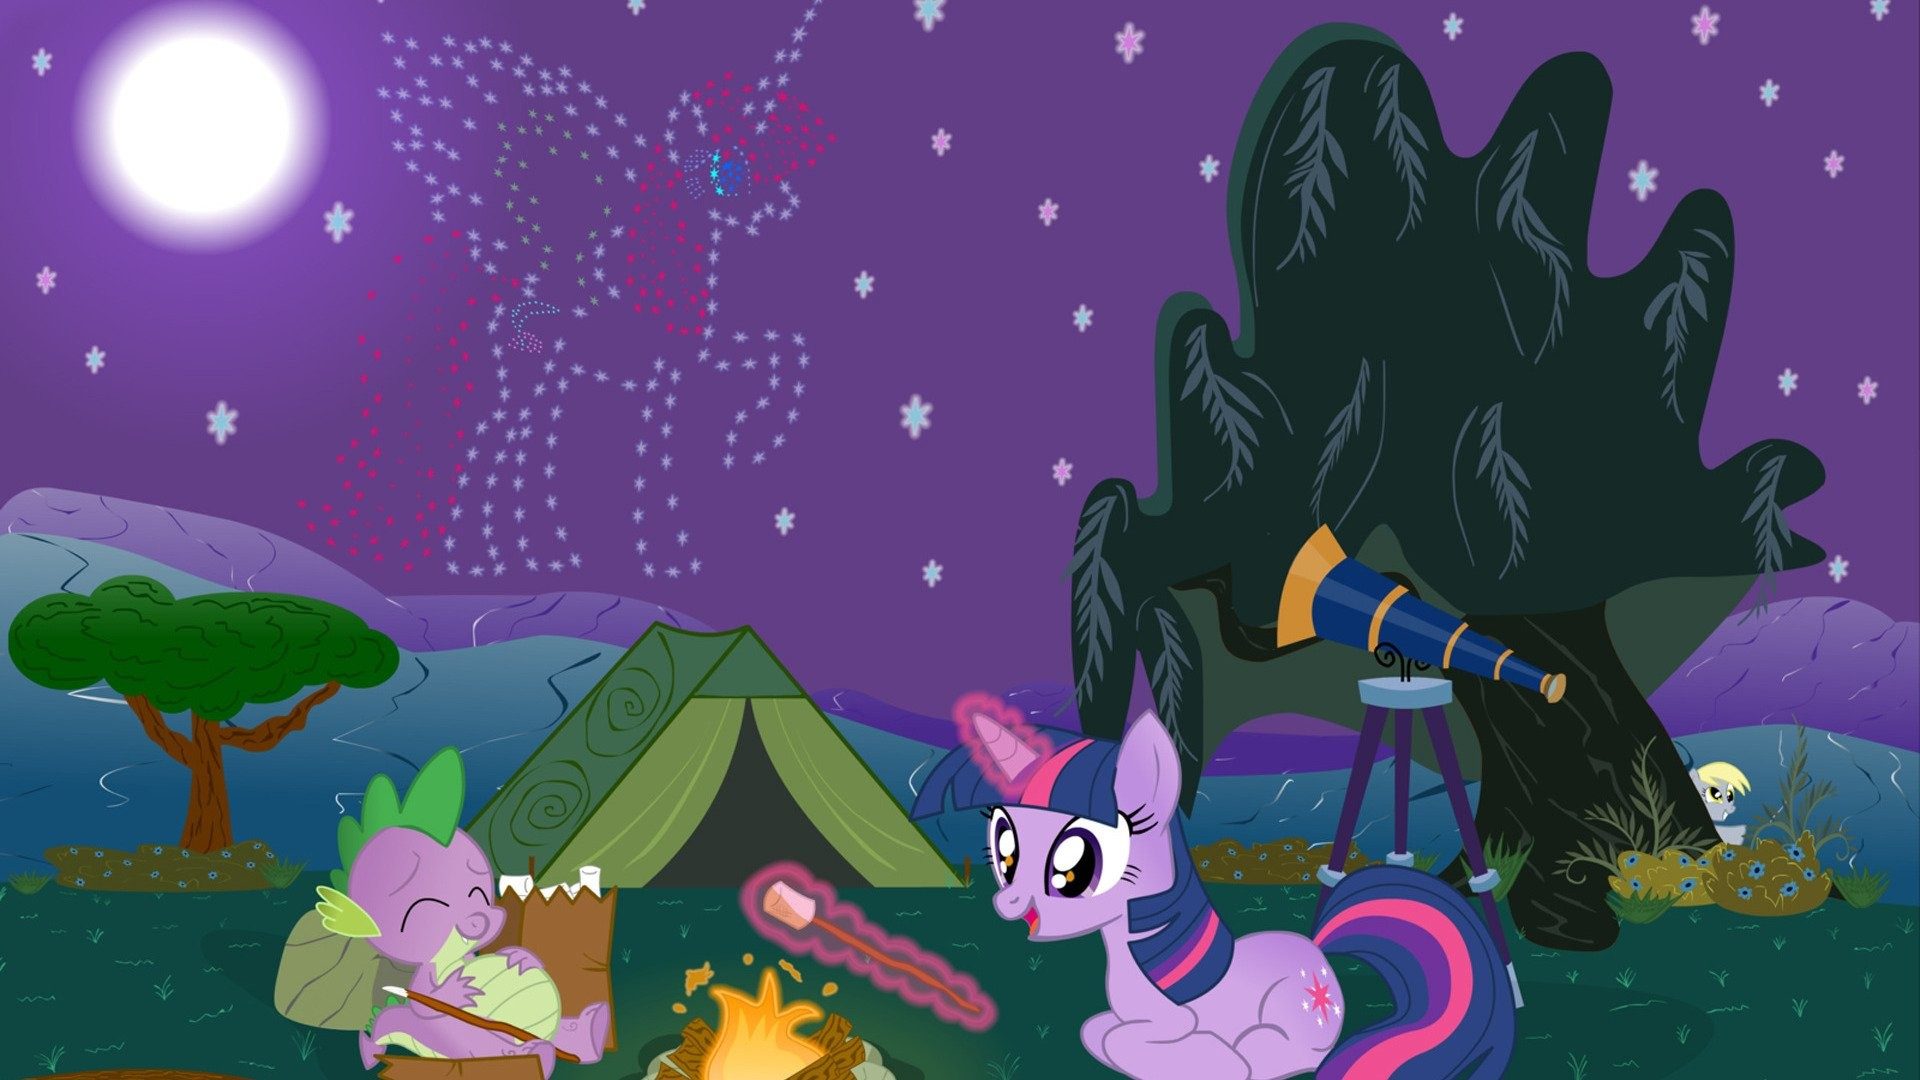 Twilight Sparkle Wallpaper 85 Images